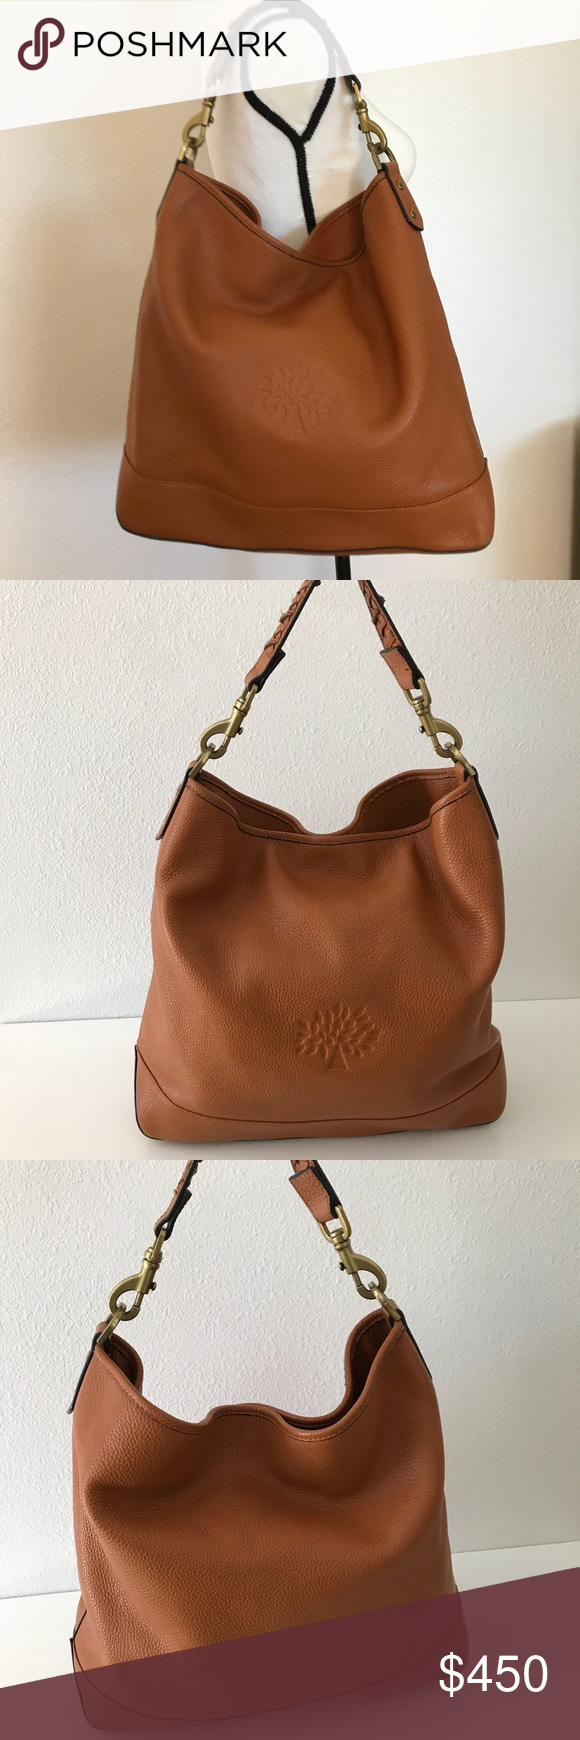 "Mulberry Effie Large Tote Oak Color Authentic Mulberry Effie Large Tote In beautiful oak color  Soft leather hobo with braided handle detail  Gold hardware  Excellent Preowned condition only has a ink stain inside very minor scuff bottom corner of purse  W 17"" L 14"" D 4 1/2"" Mulberry Bags Hobos #mulberrybag"